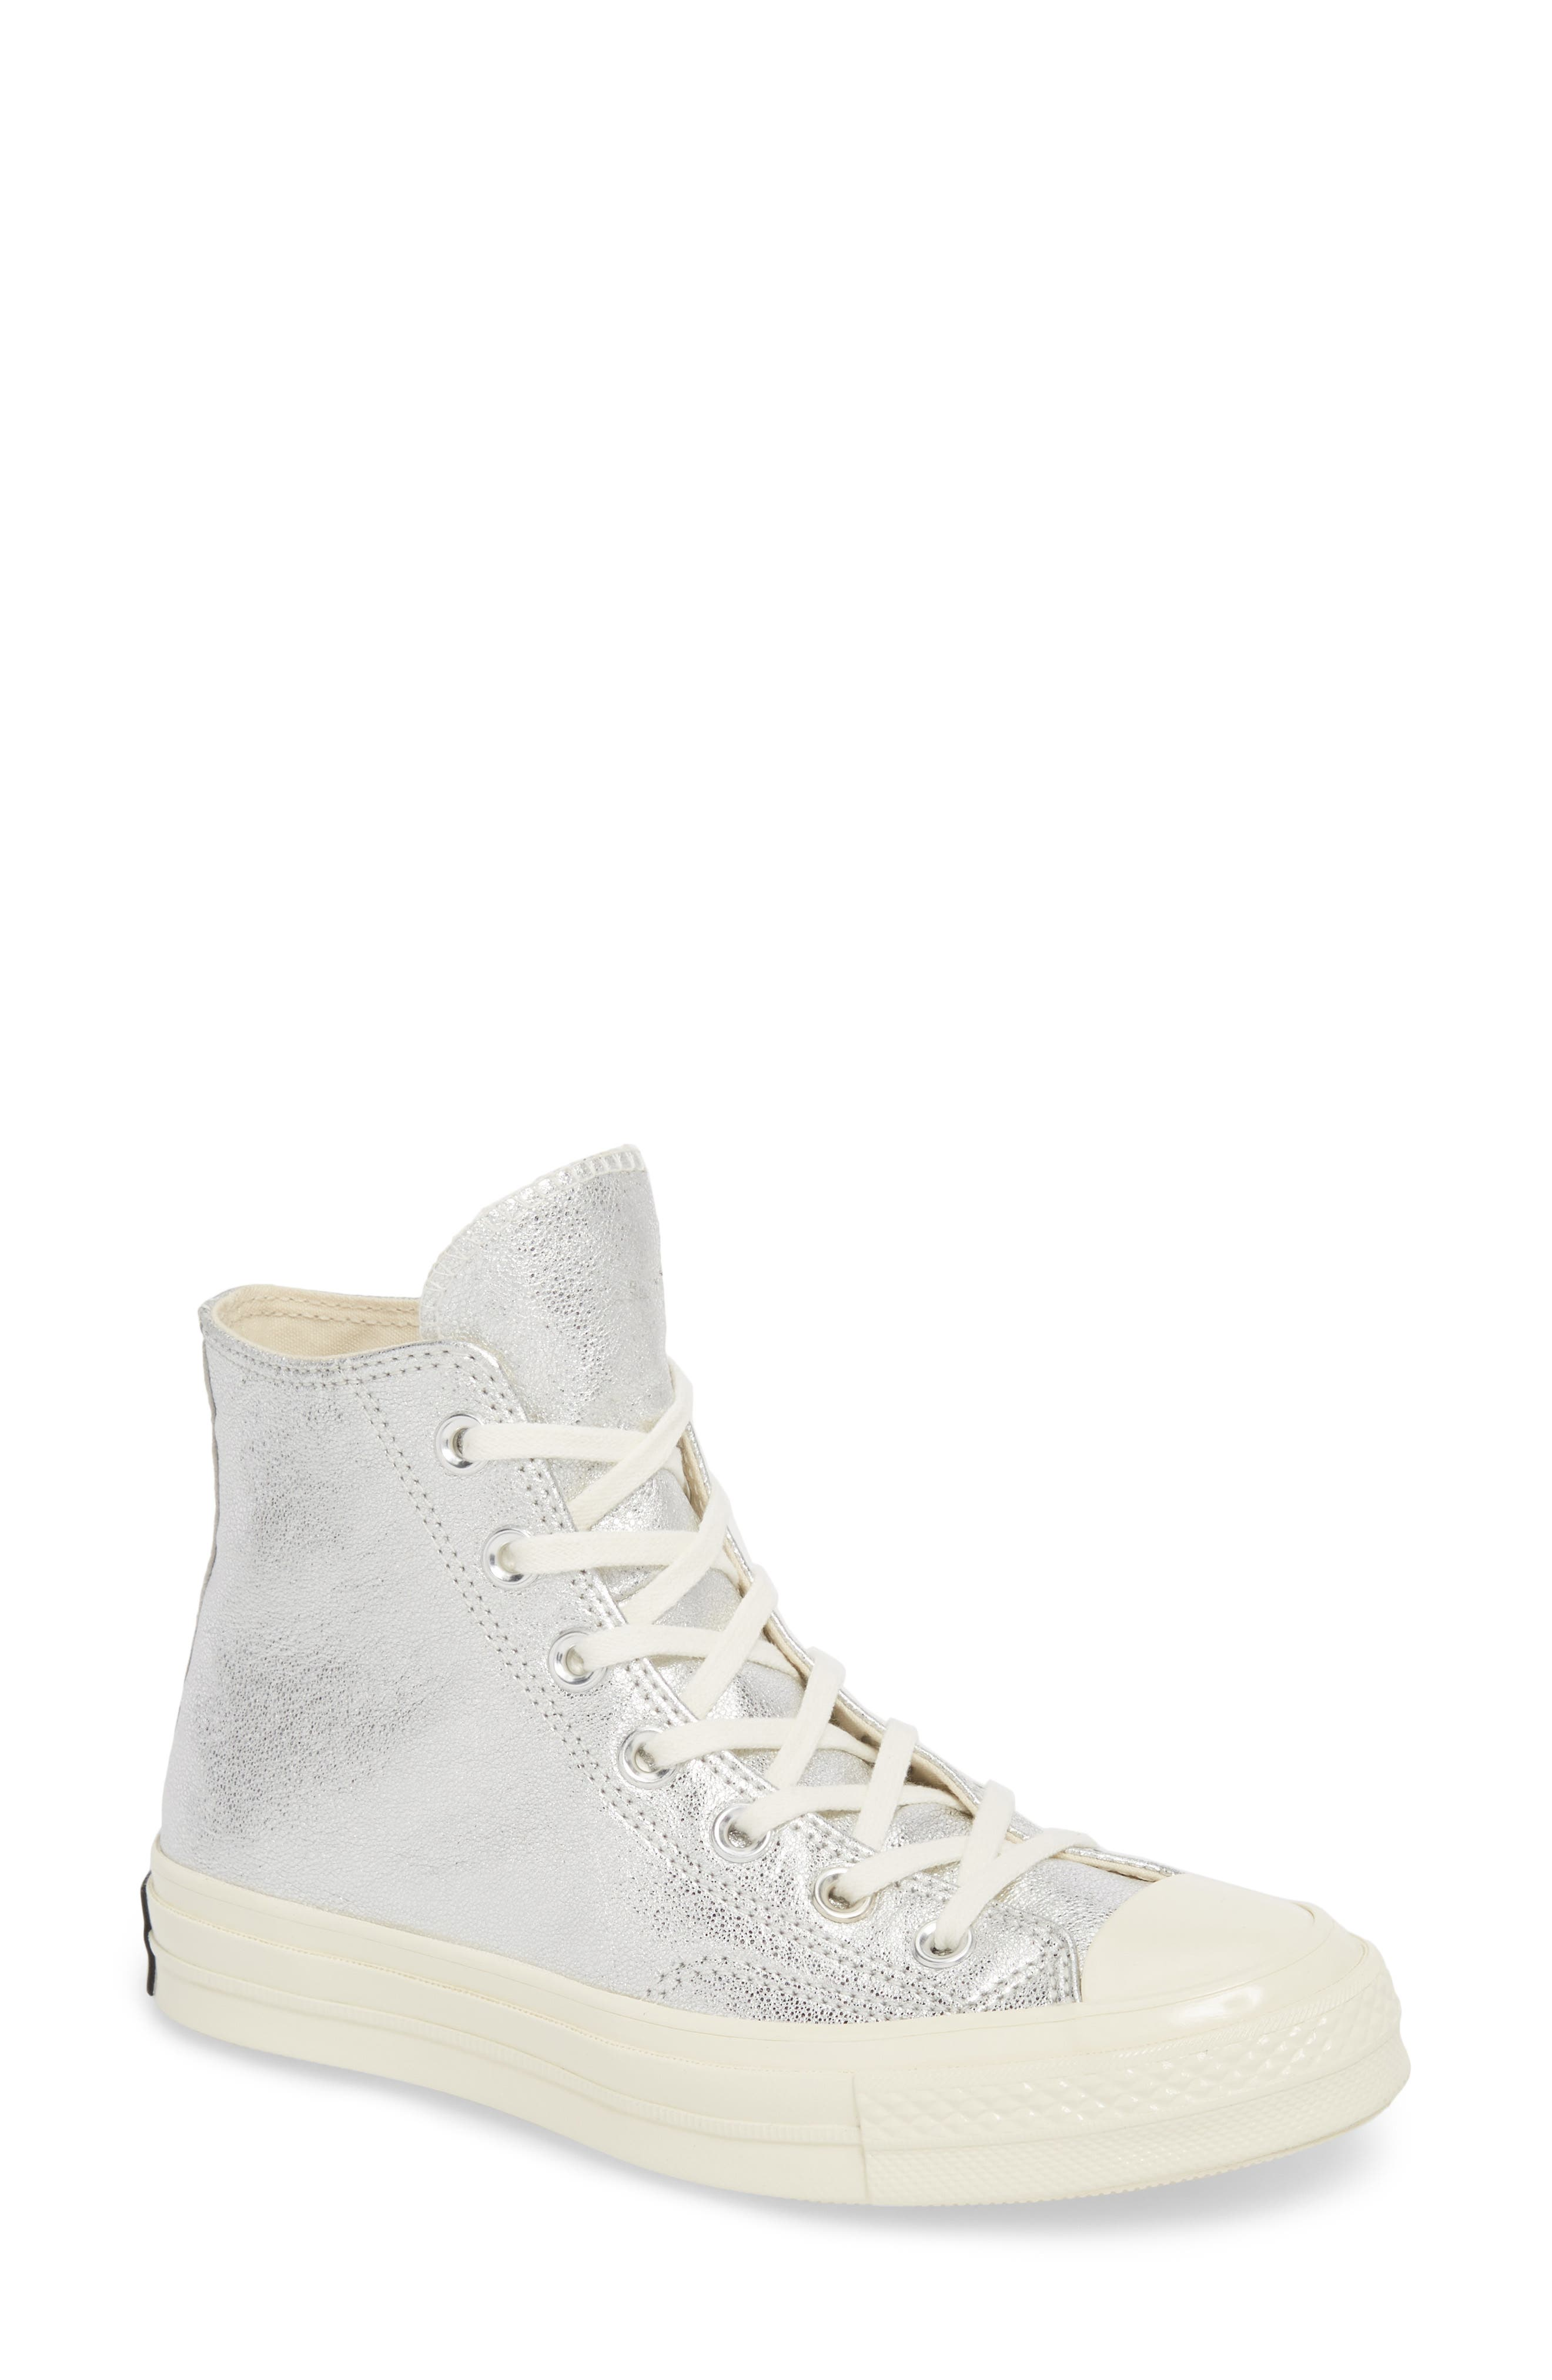 Chuck Taylor<sup>®</sup> All Star<sup>®</sup> Heavy Metal 70 High Top Sneaker,                         Main,                         color, 040